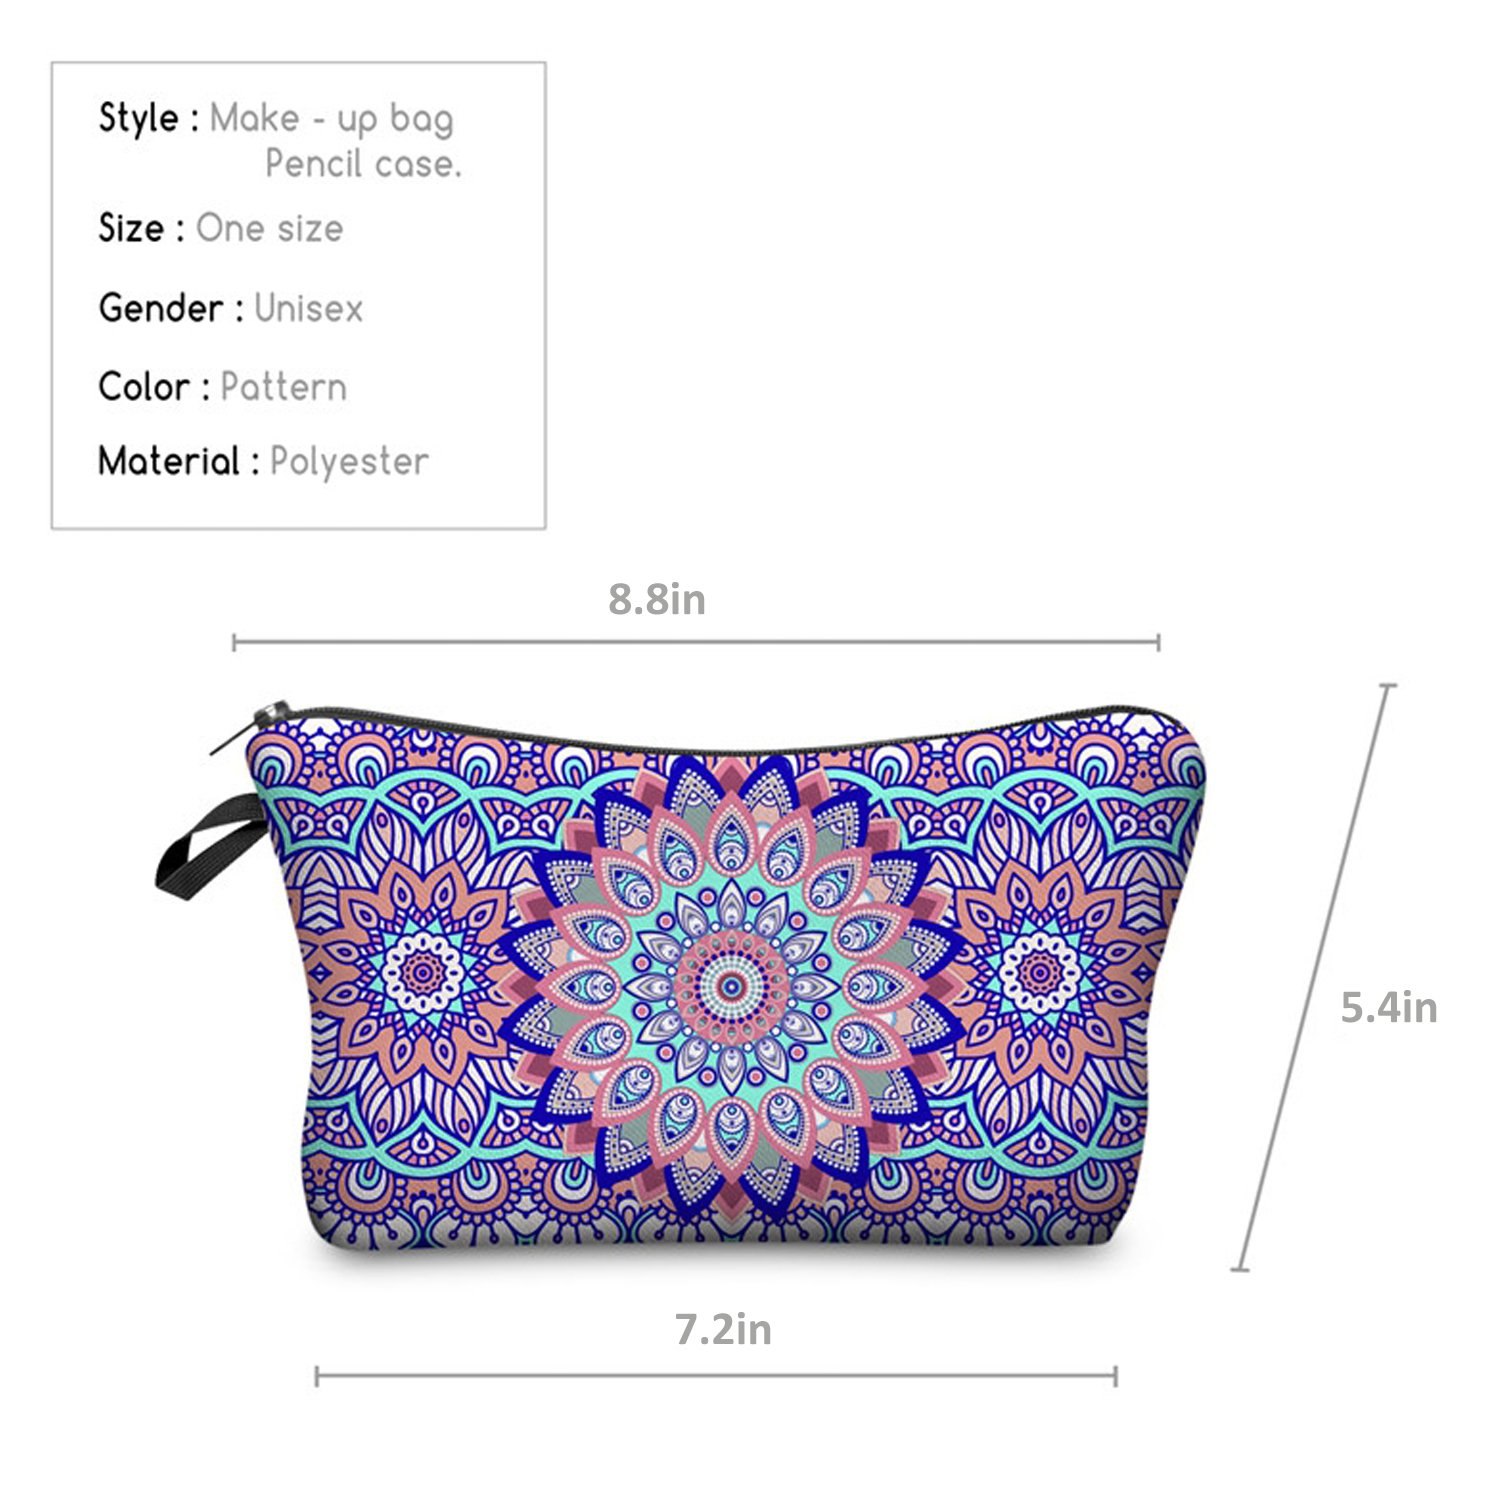 Mandala Pencil Case Floral Plush Bag Pen Cosmetic Travel Make up Pouch Gift for School Kids Boys Girls (1)